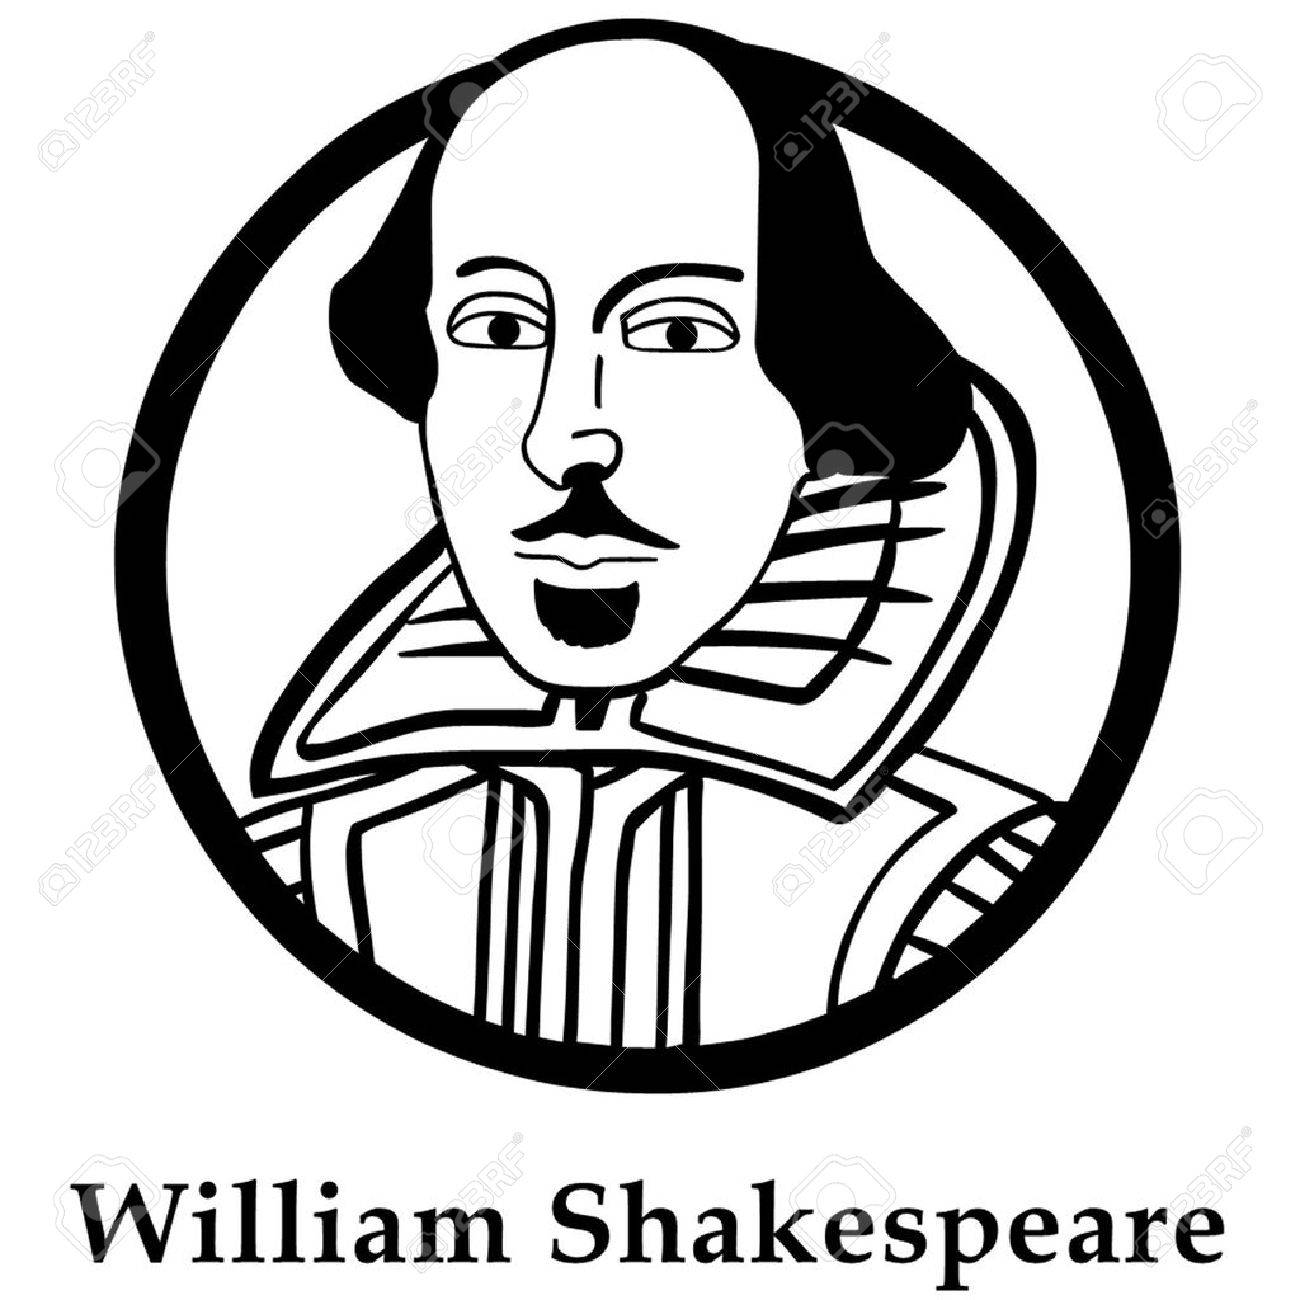 william shakespeare royalty free cliparts vectors and stock rh 123rf com